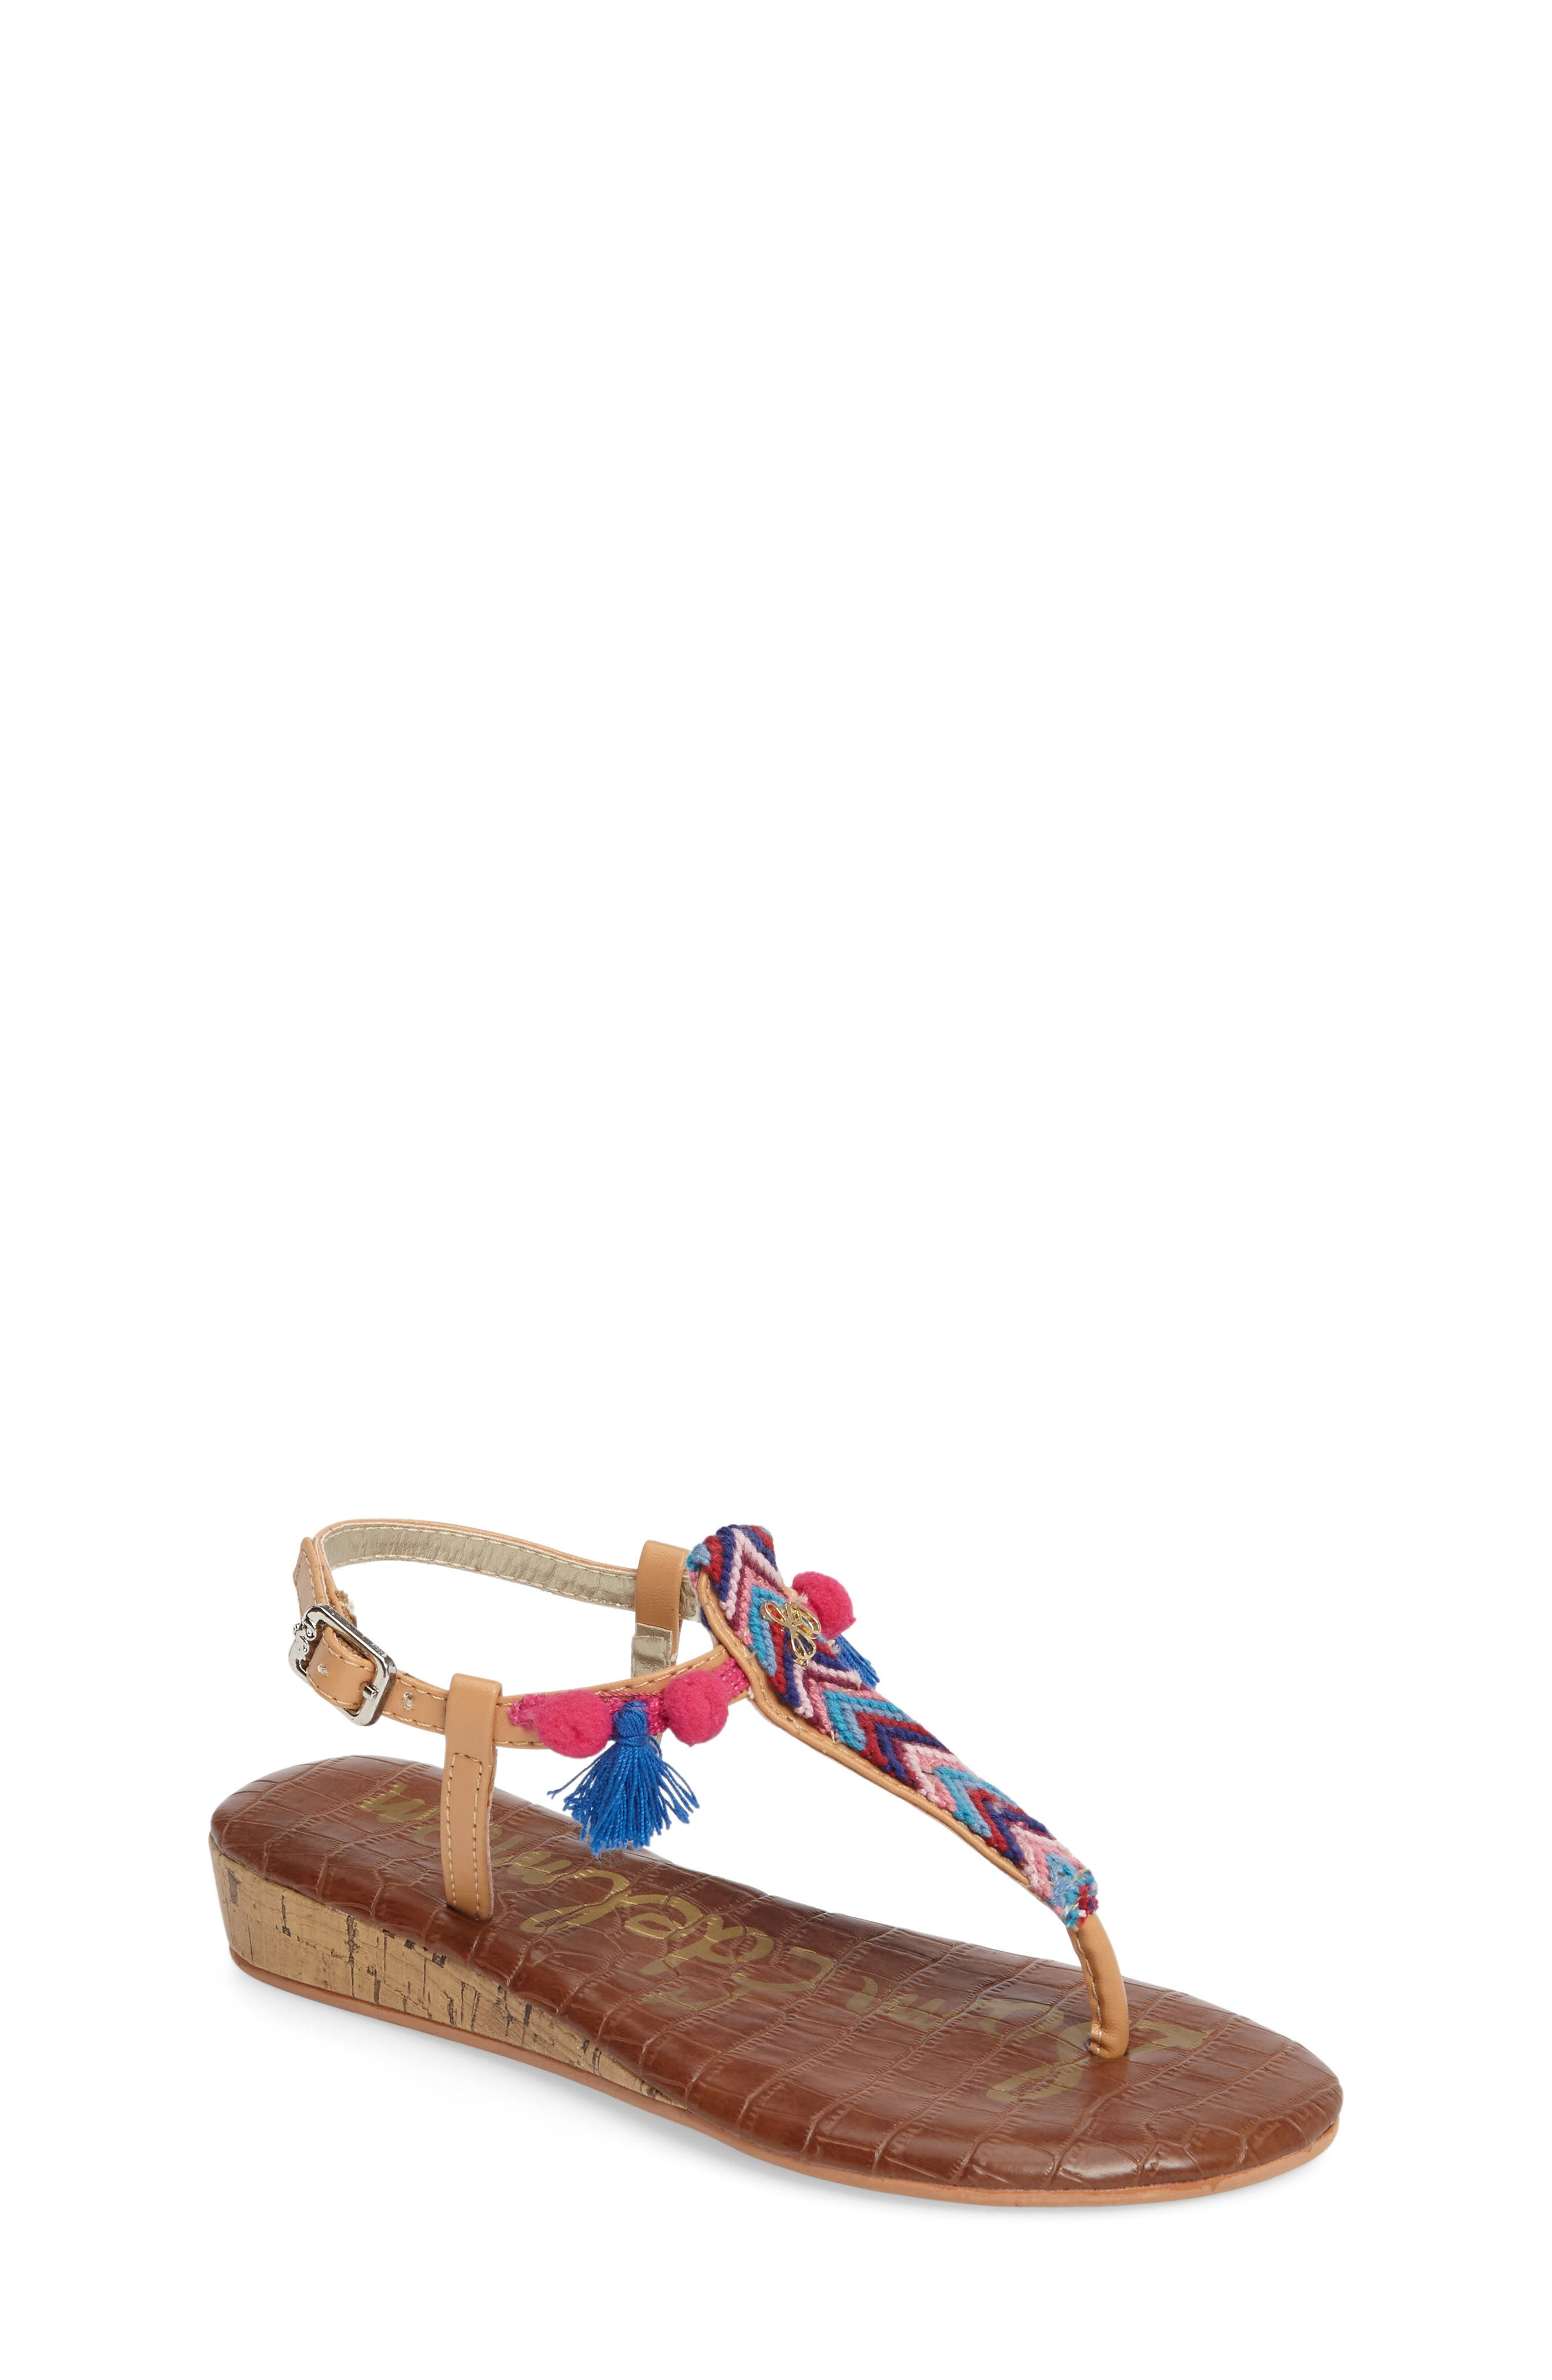 Sam Edelman Danica Sienna Thong Sandal (Toddler, Little Kid & Big Kid)